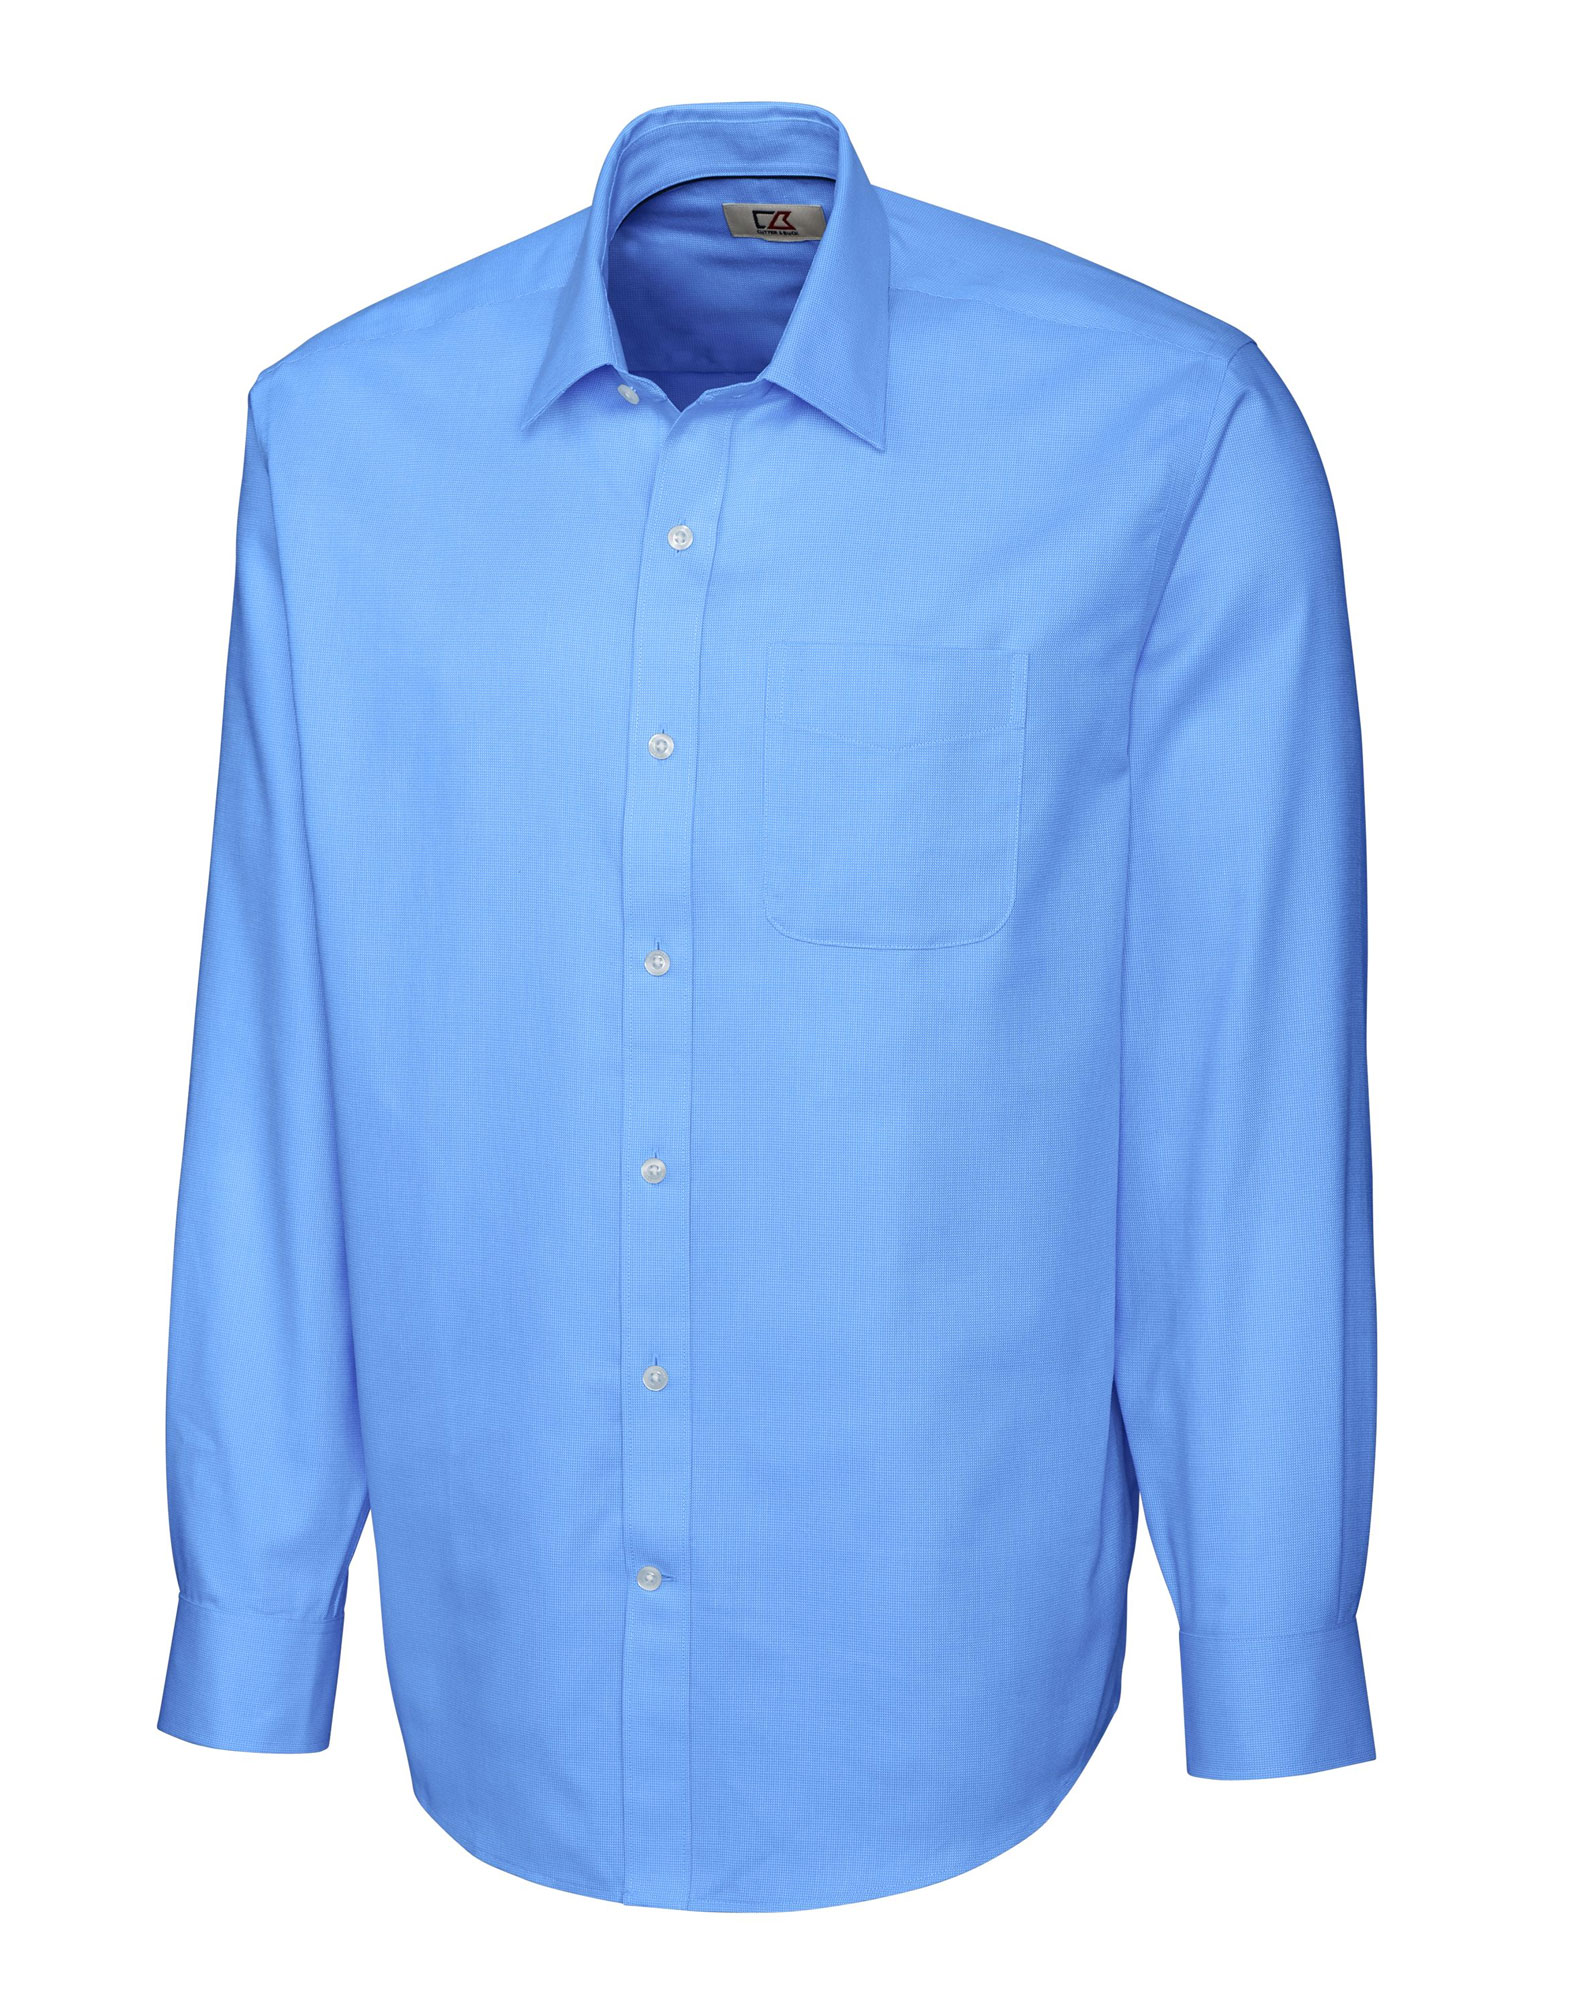 Mens Epic Easy Care Spread Collar Nailshead Dress Shirt in Big & Tall Sizes